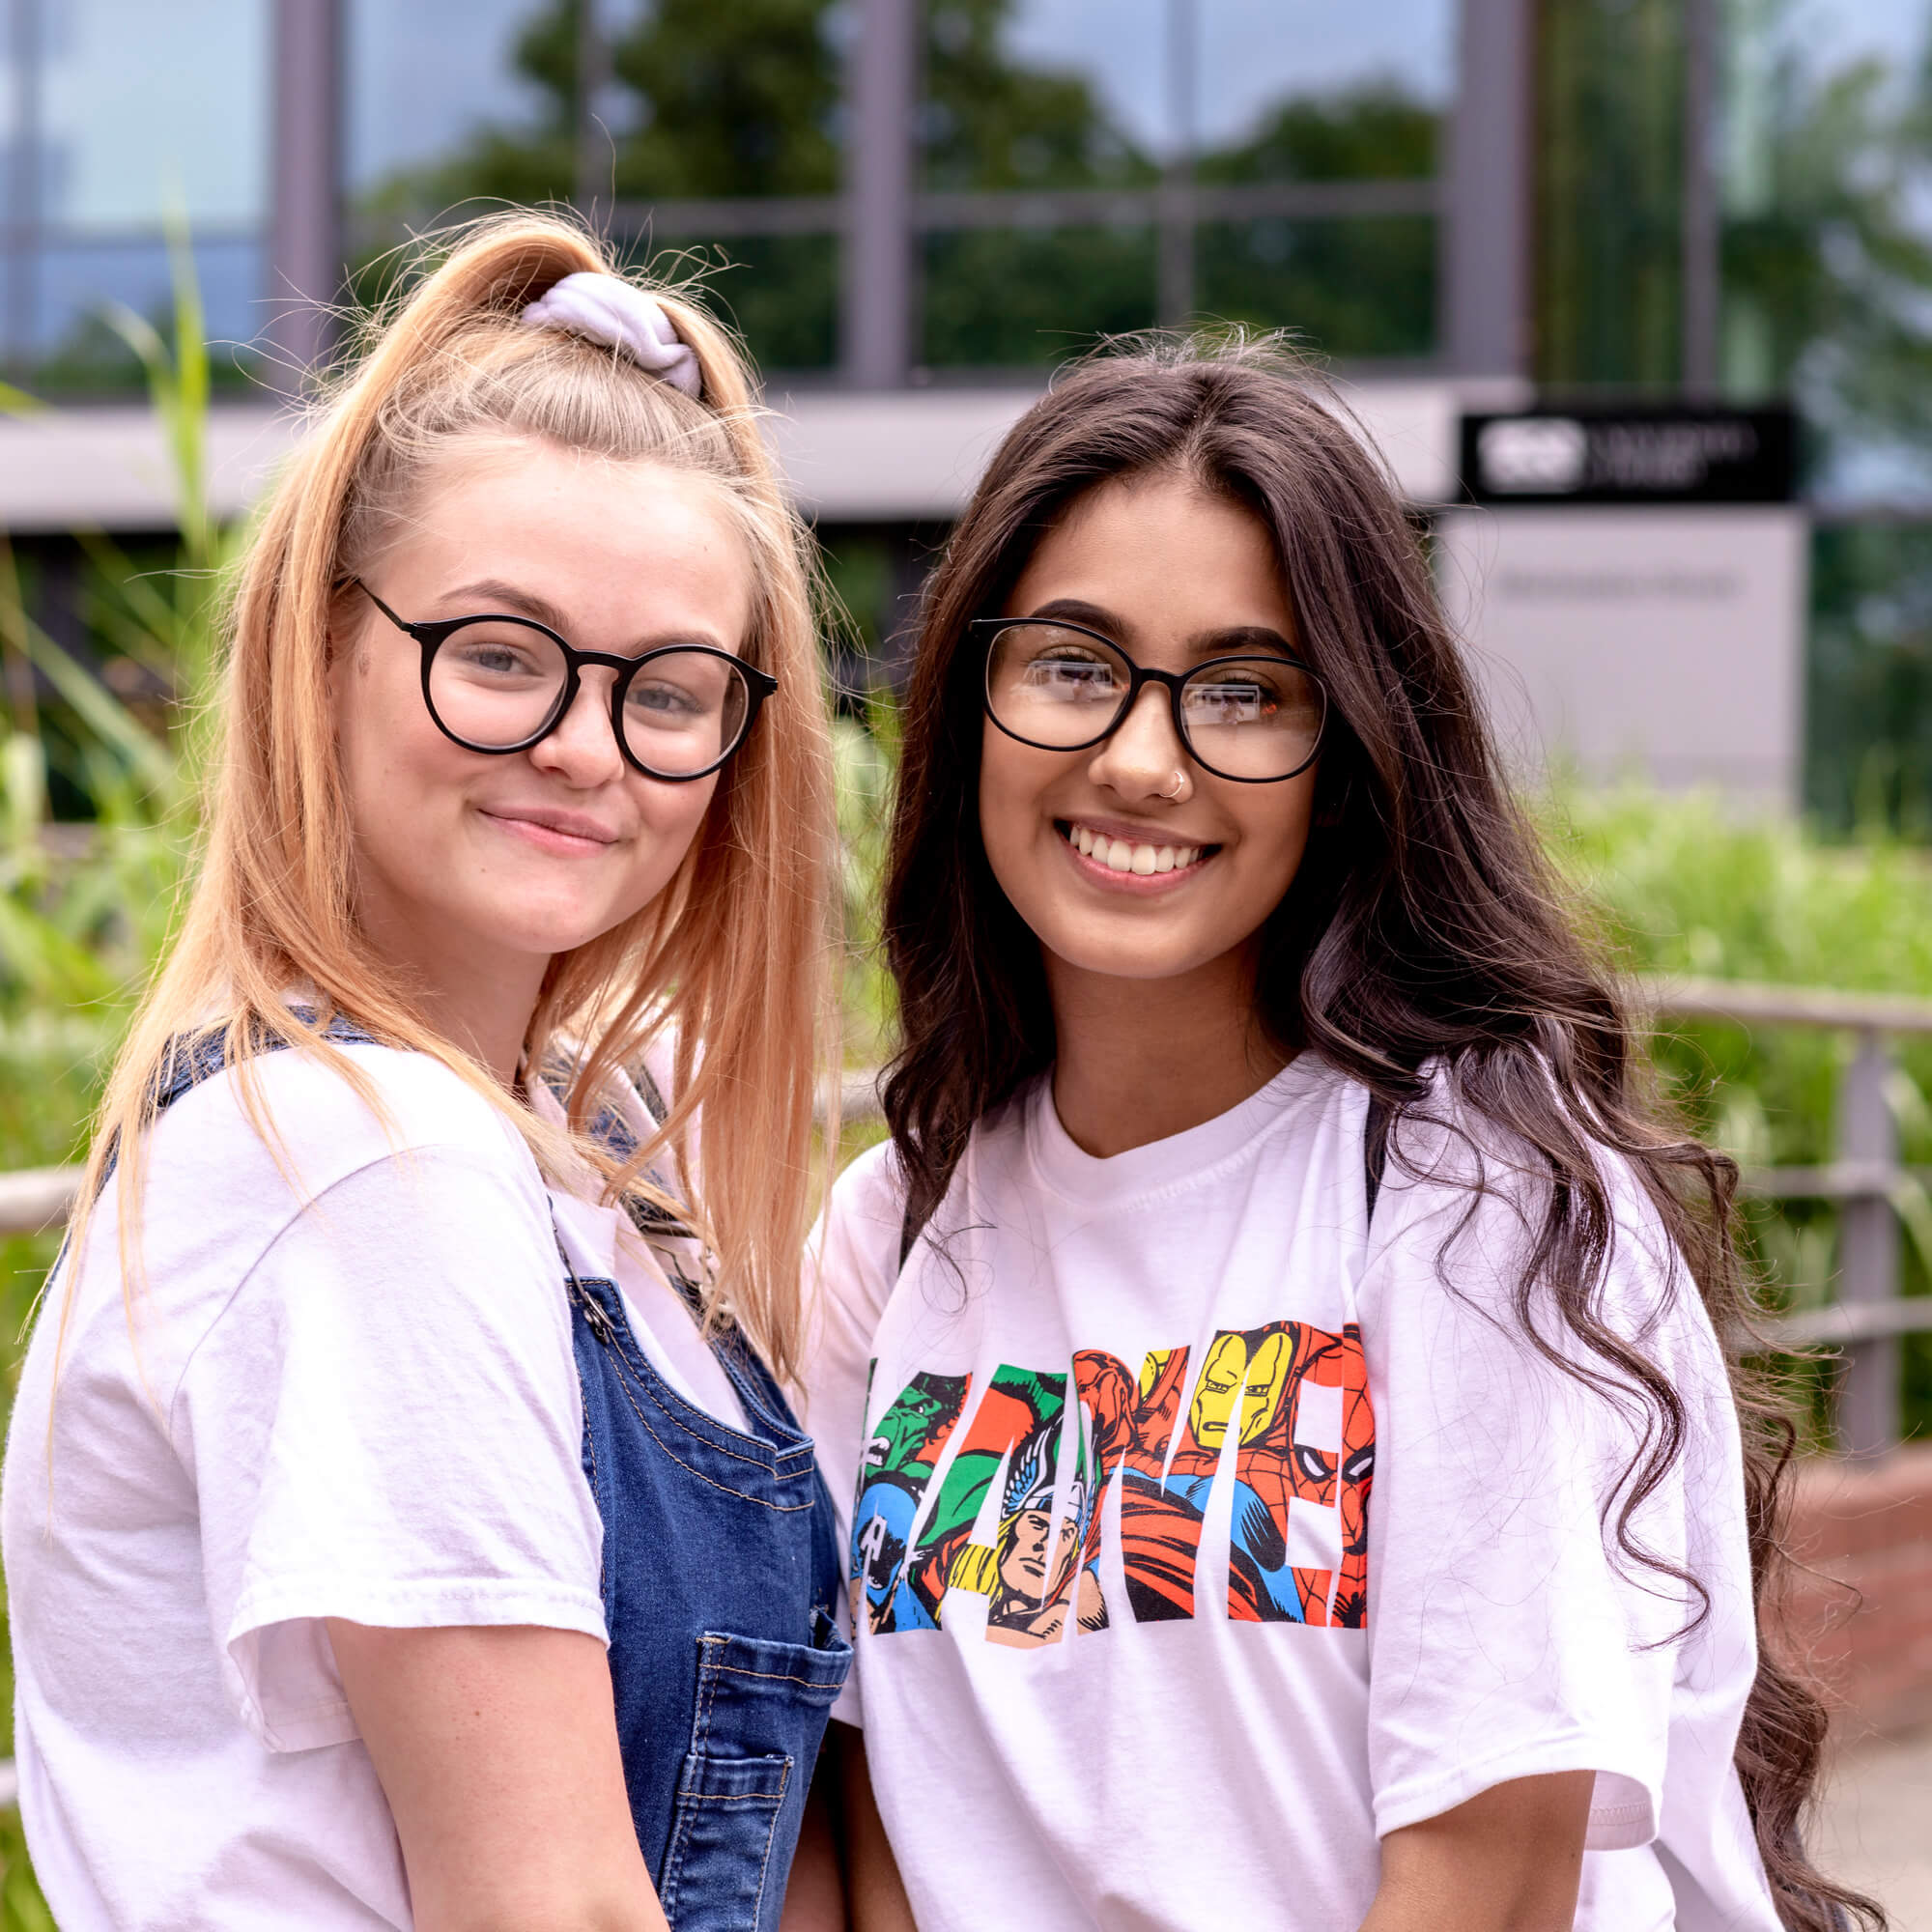 Two students outside Markeaton Street smiling